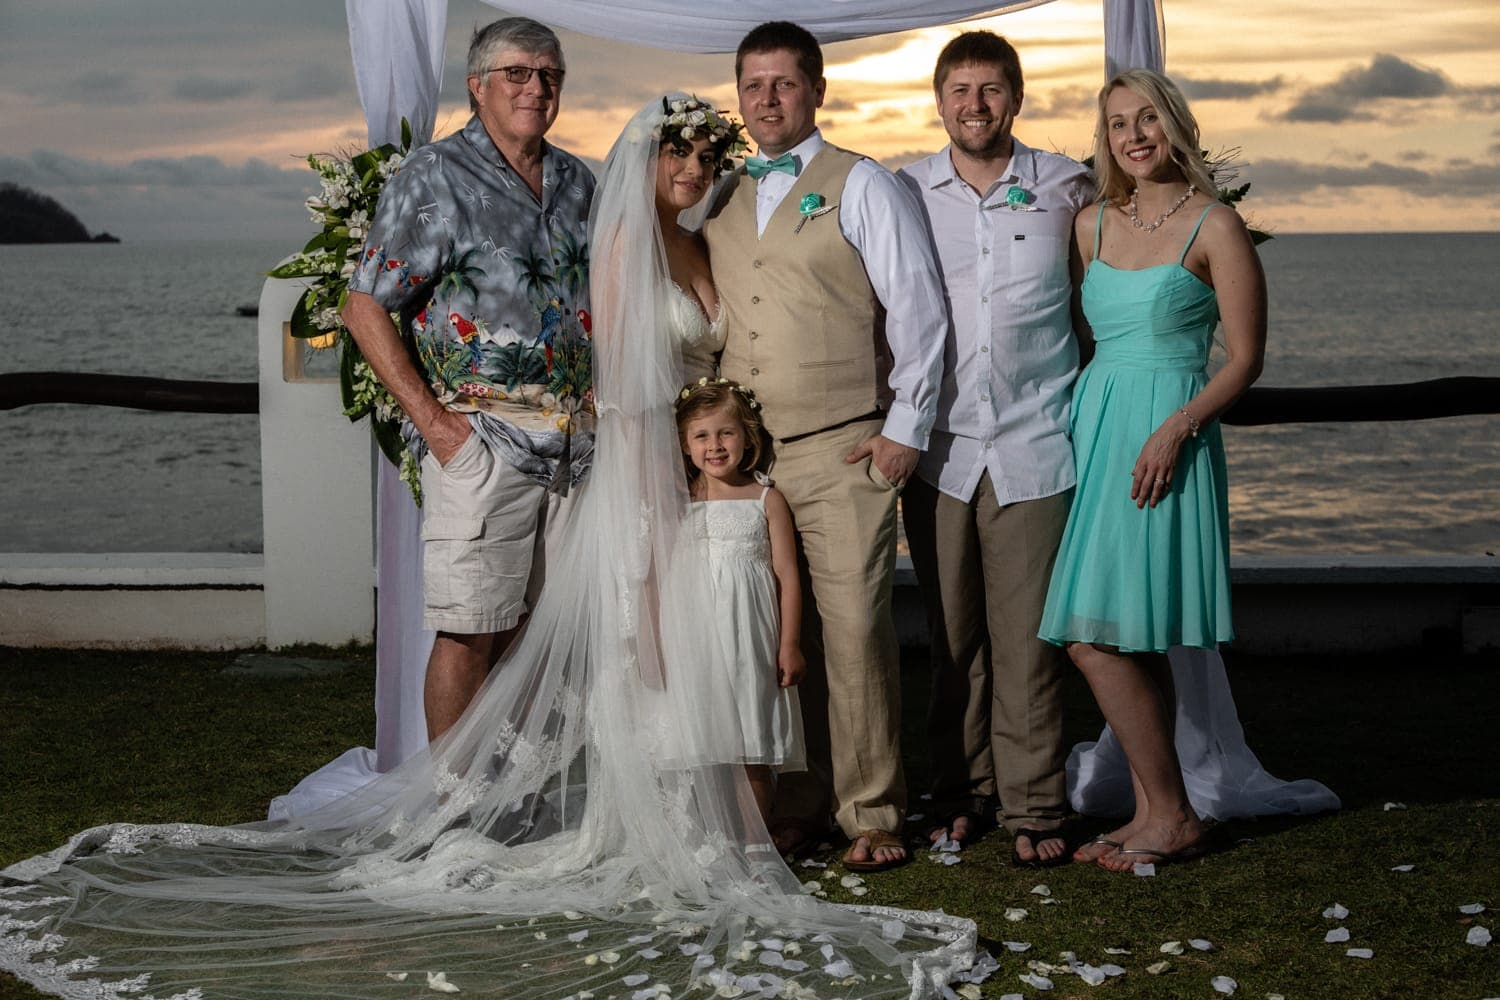 Beach portrait of bride, groom, and family at sunset in Guanacaste.